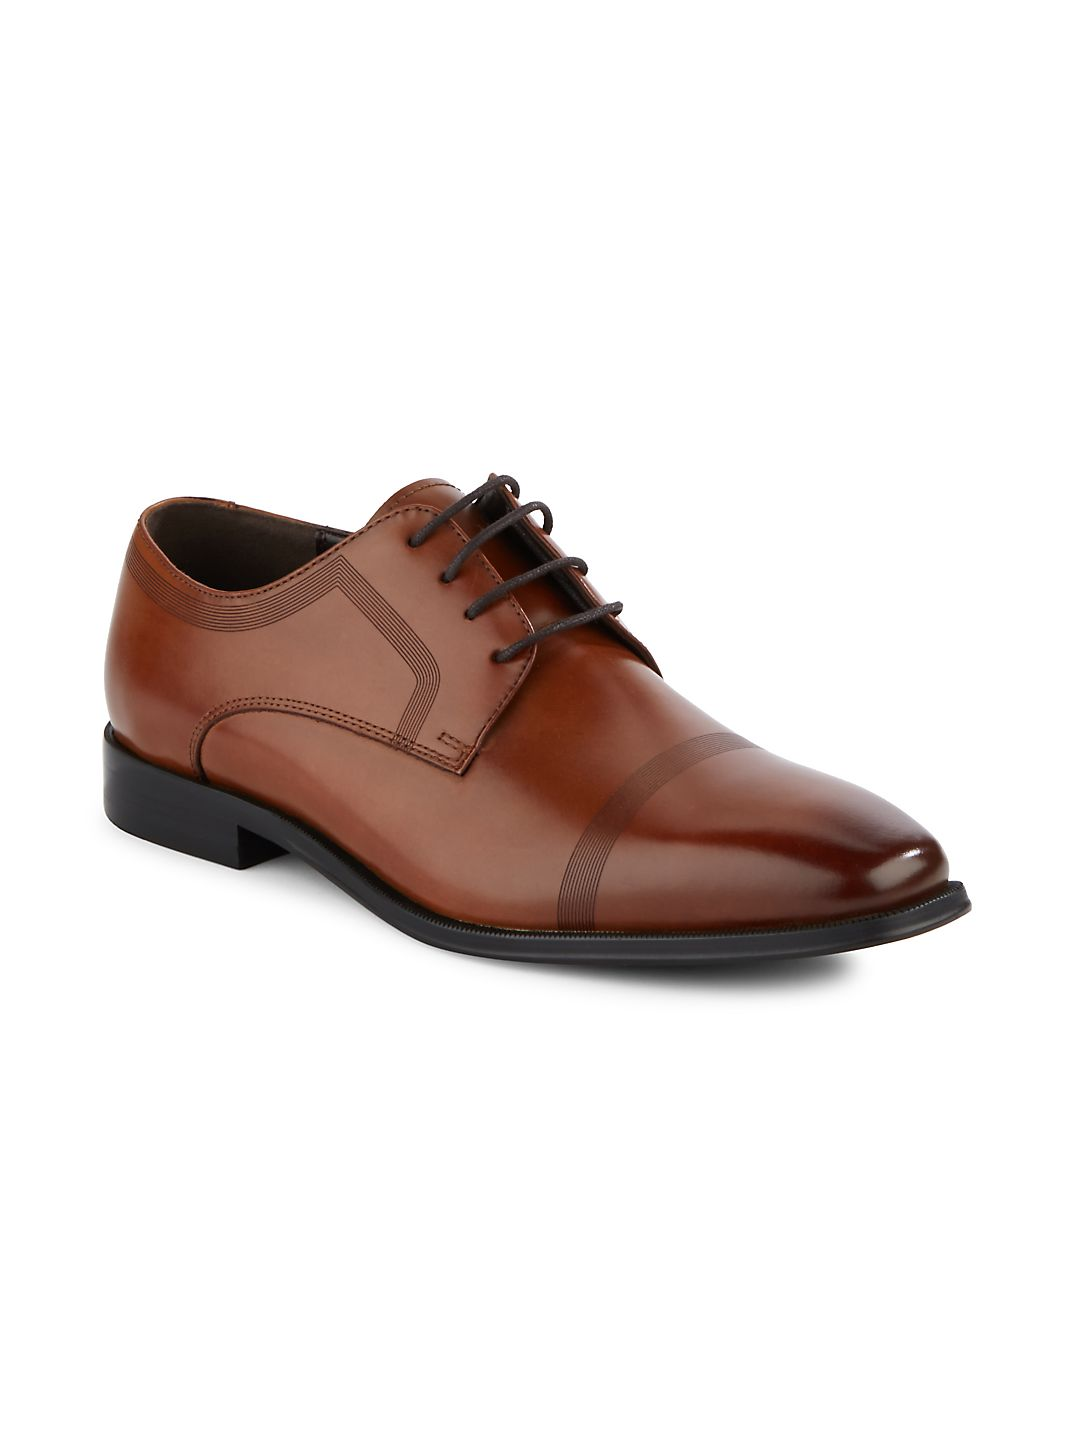 Leather Dress Oxfords